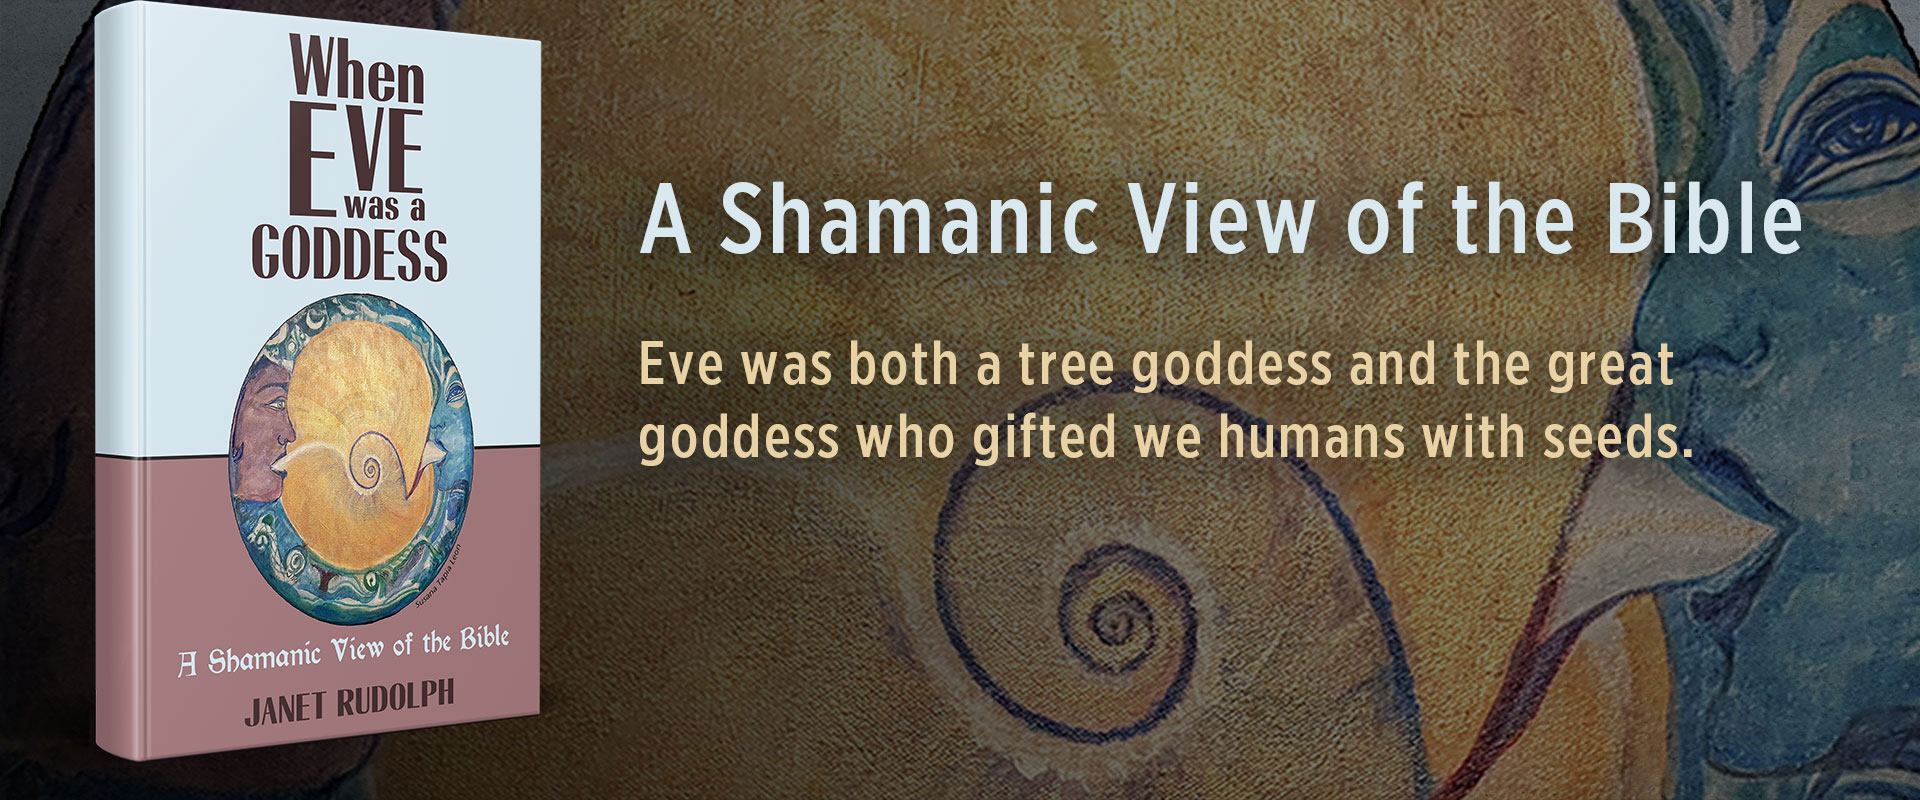 When Eve Was a Goddess a